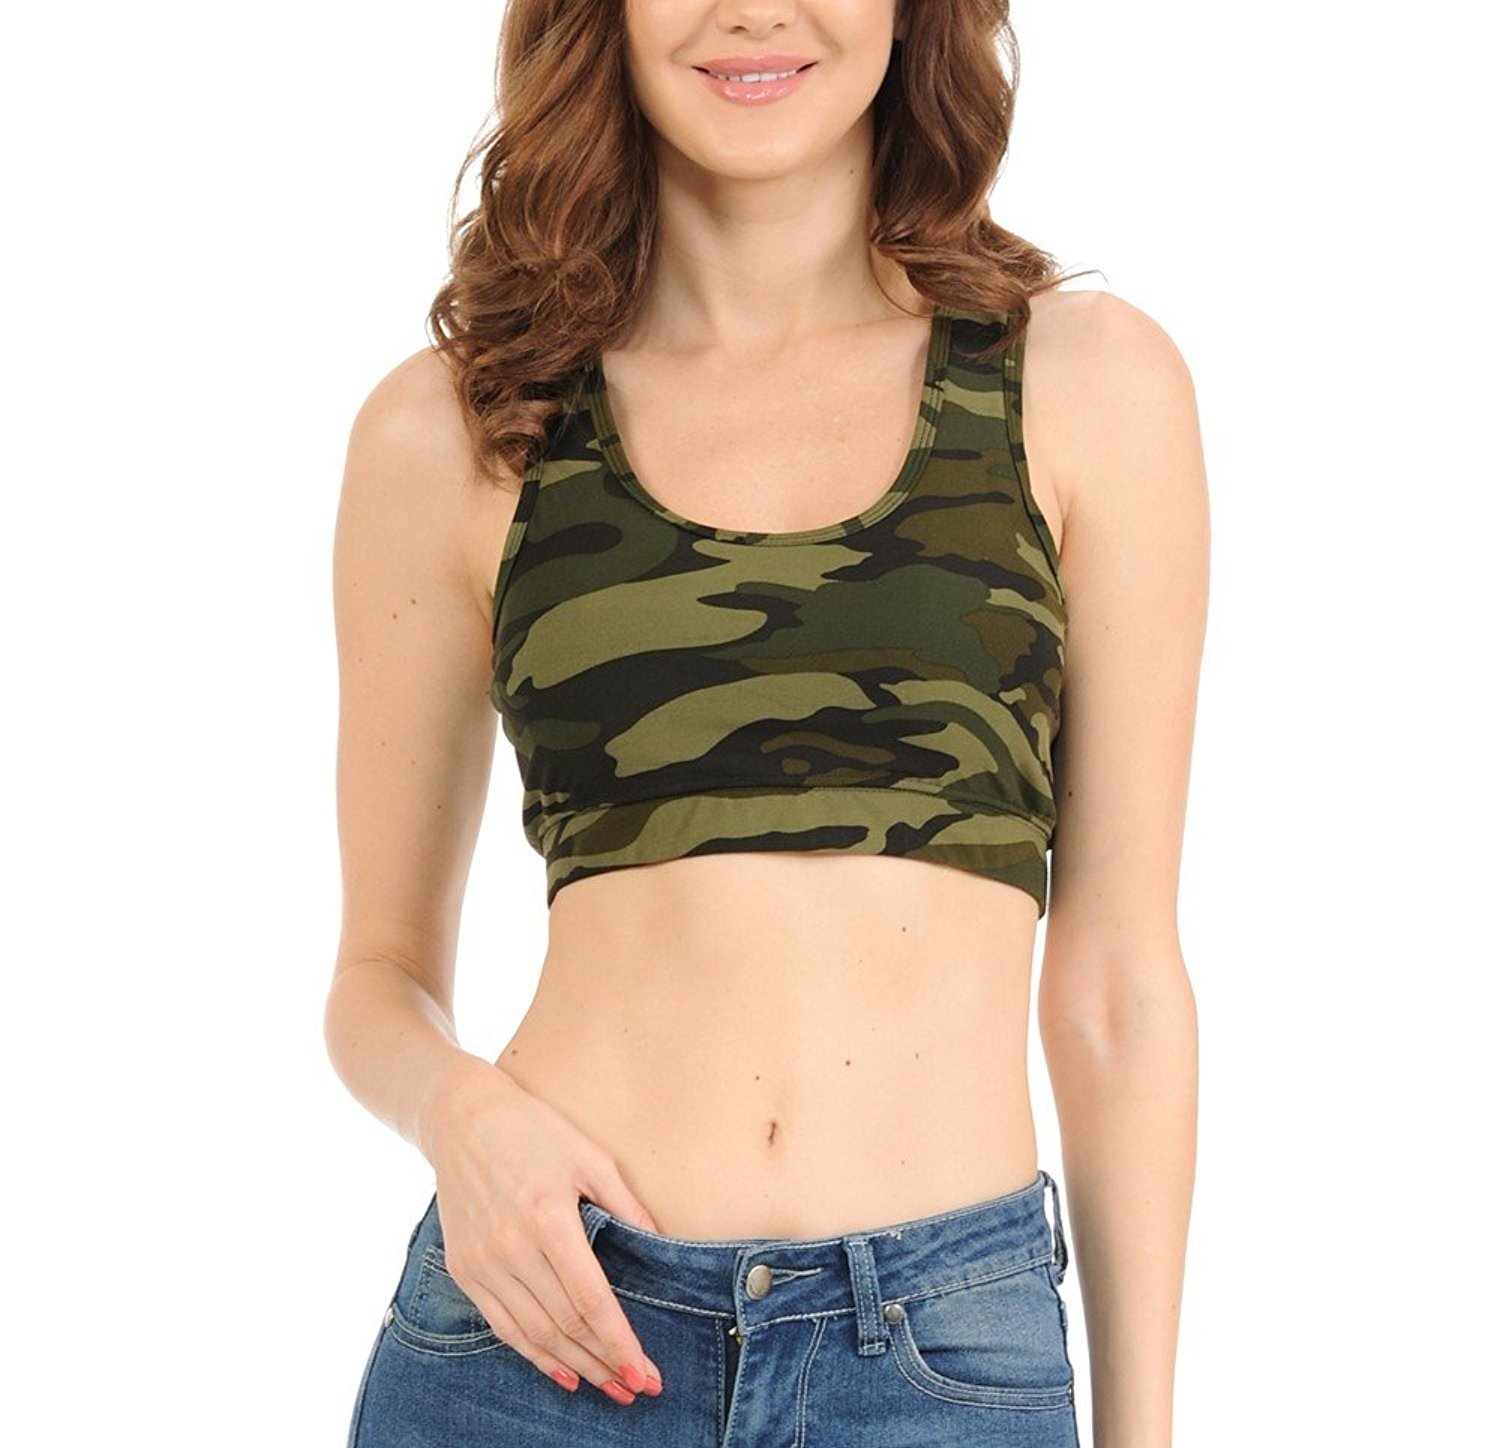 9cf0eb5e20d48 Get Quotations · bluensquare Racer Back Sports Bra For Women  Camouflage Removable Pad Yoga Gym Fitness Crop Top